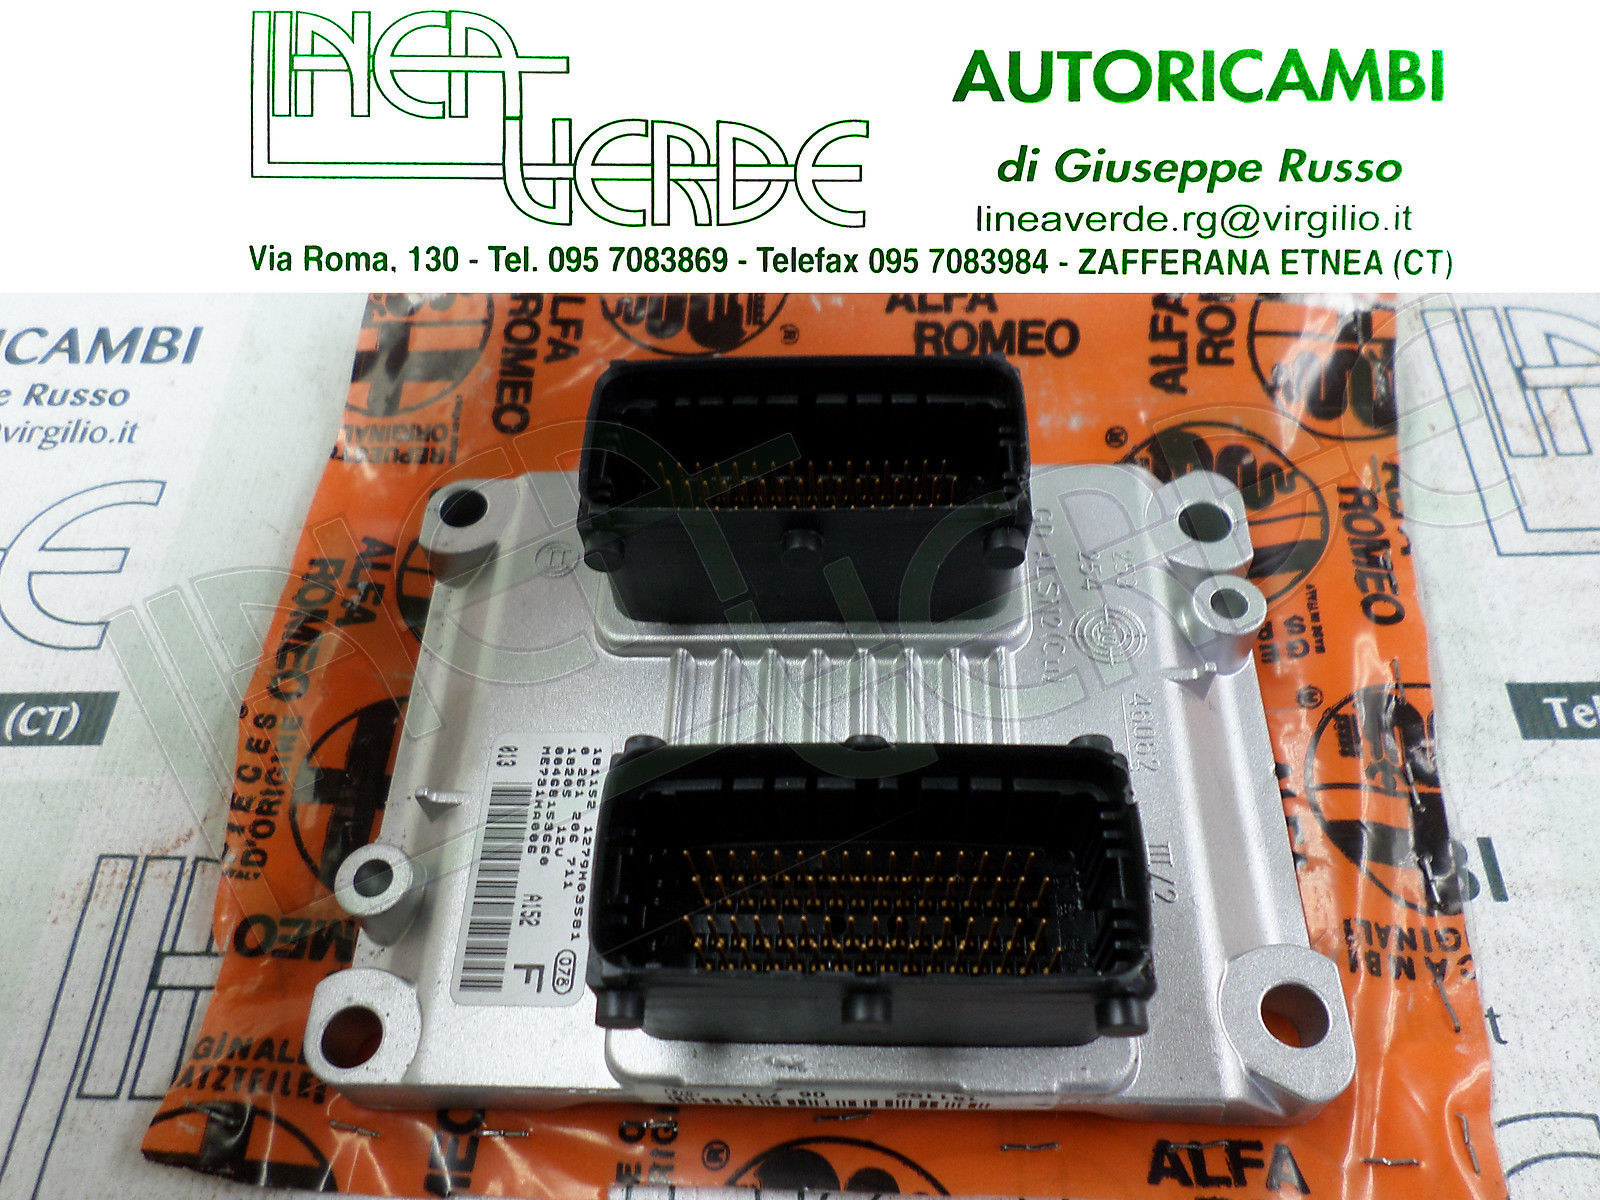 ECU INJECTION ORIGINAL 46815366 ALFA 156 1,8 T.S. CF3